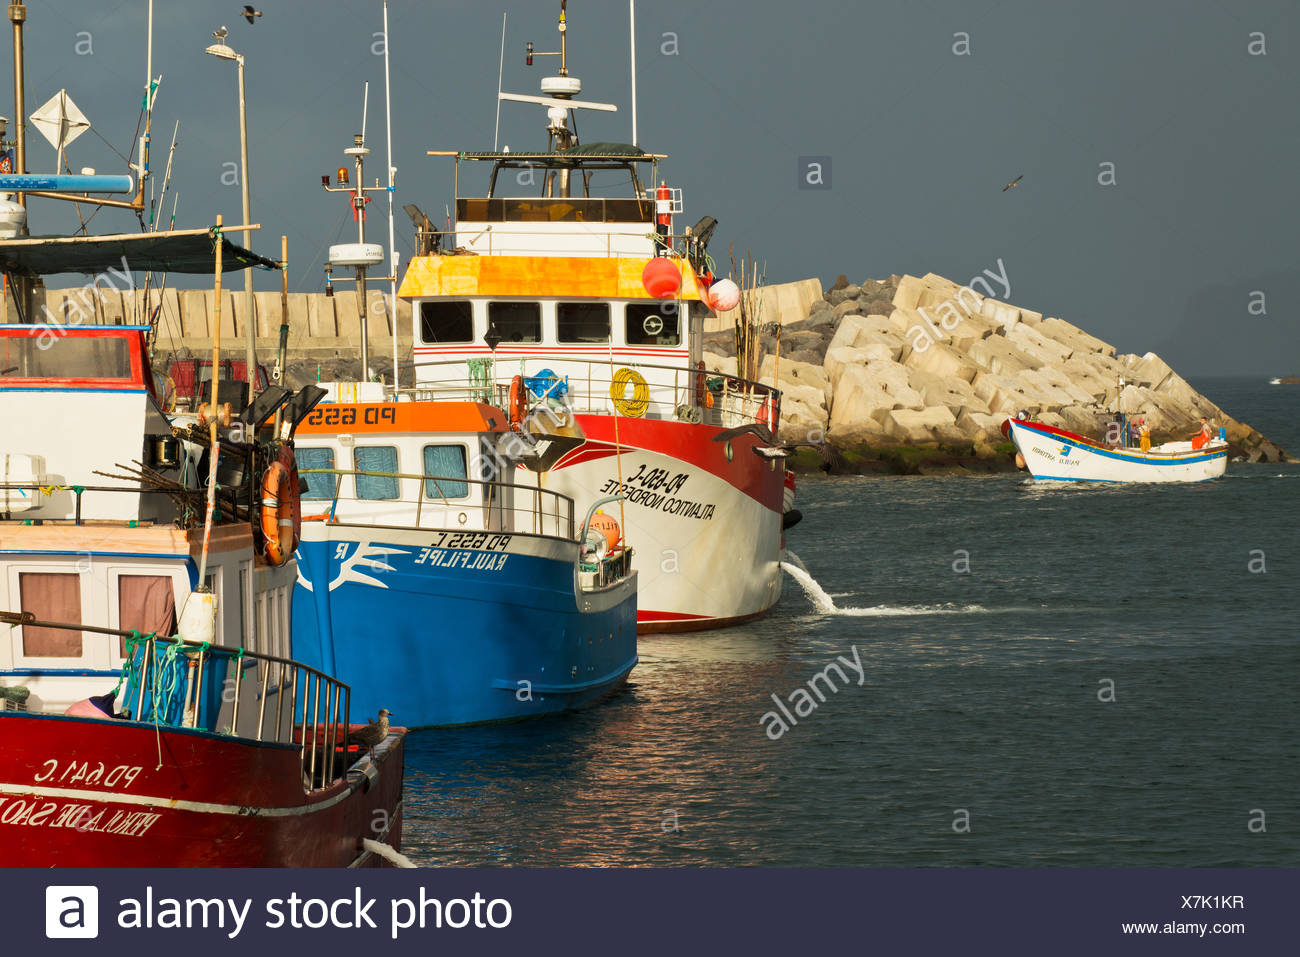 The waterfront at Vila Franca do Campo with fishing trawlers. - Stock Image